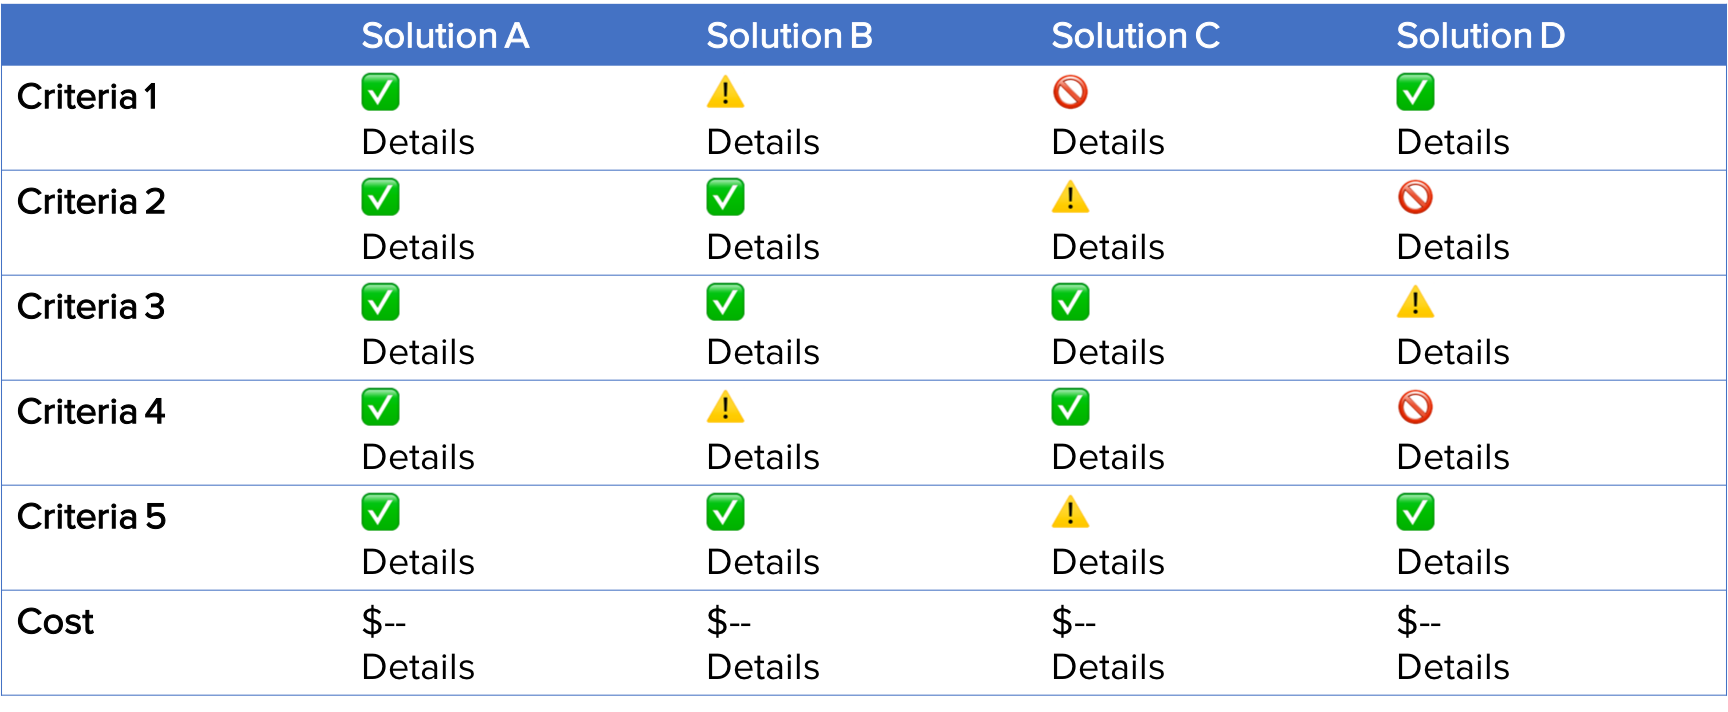 Solution-Comparison-Example.png